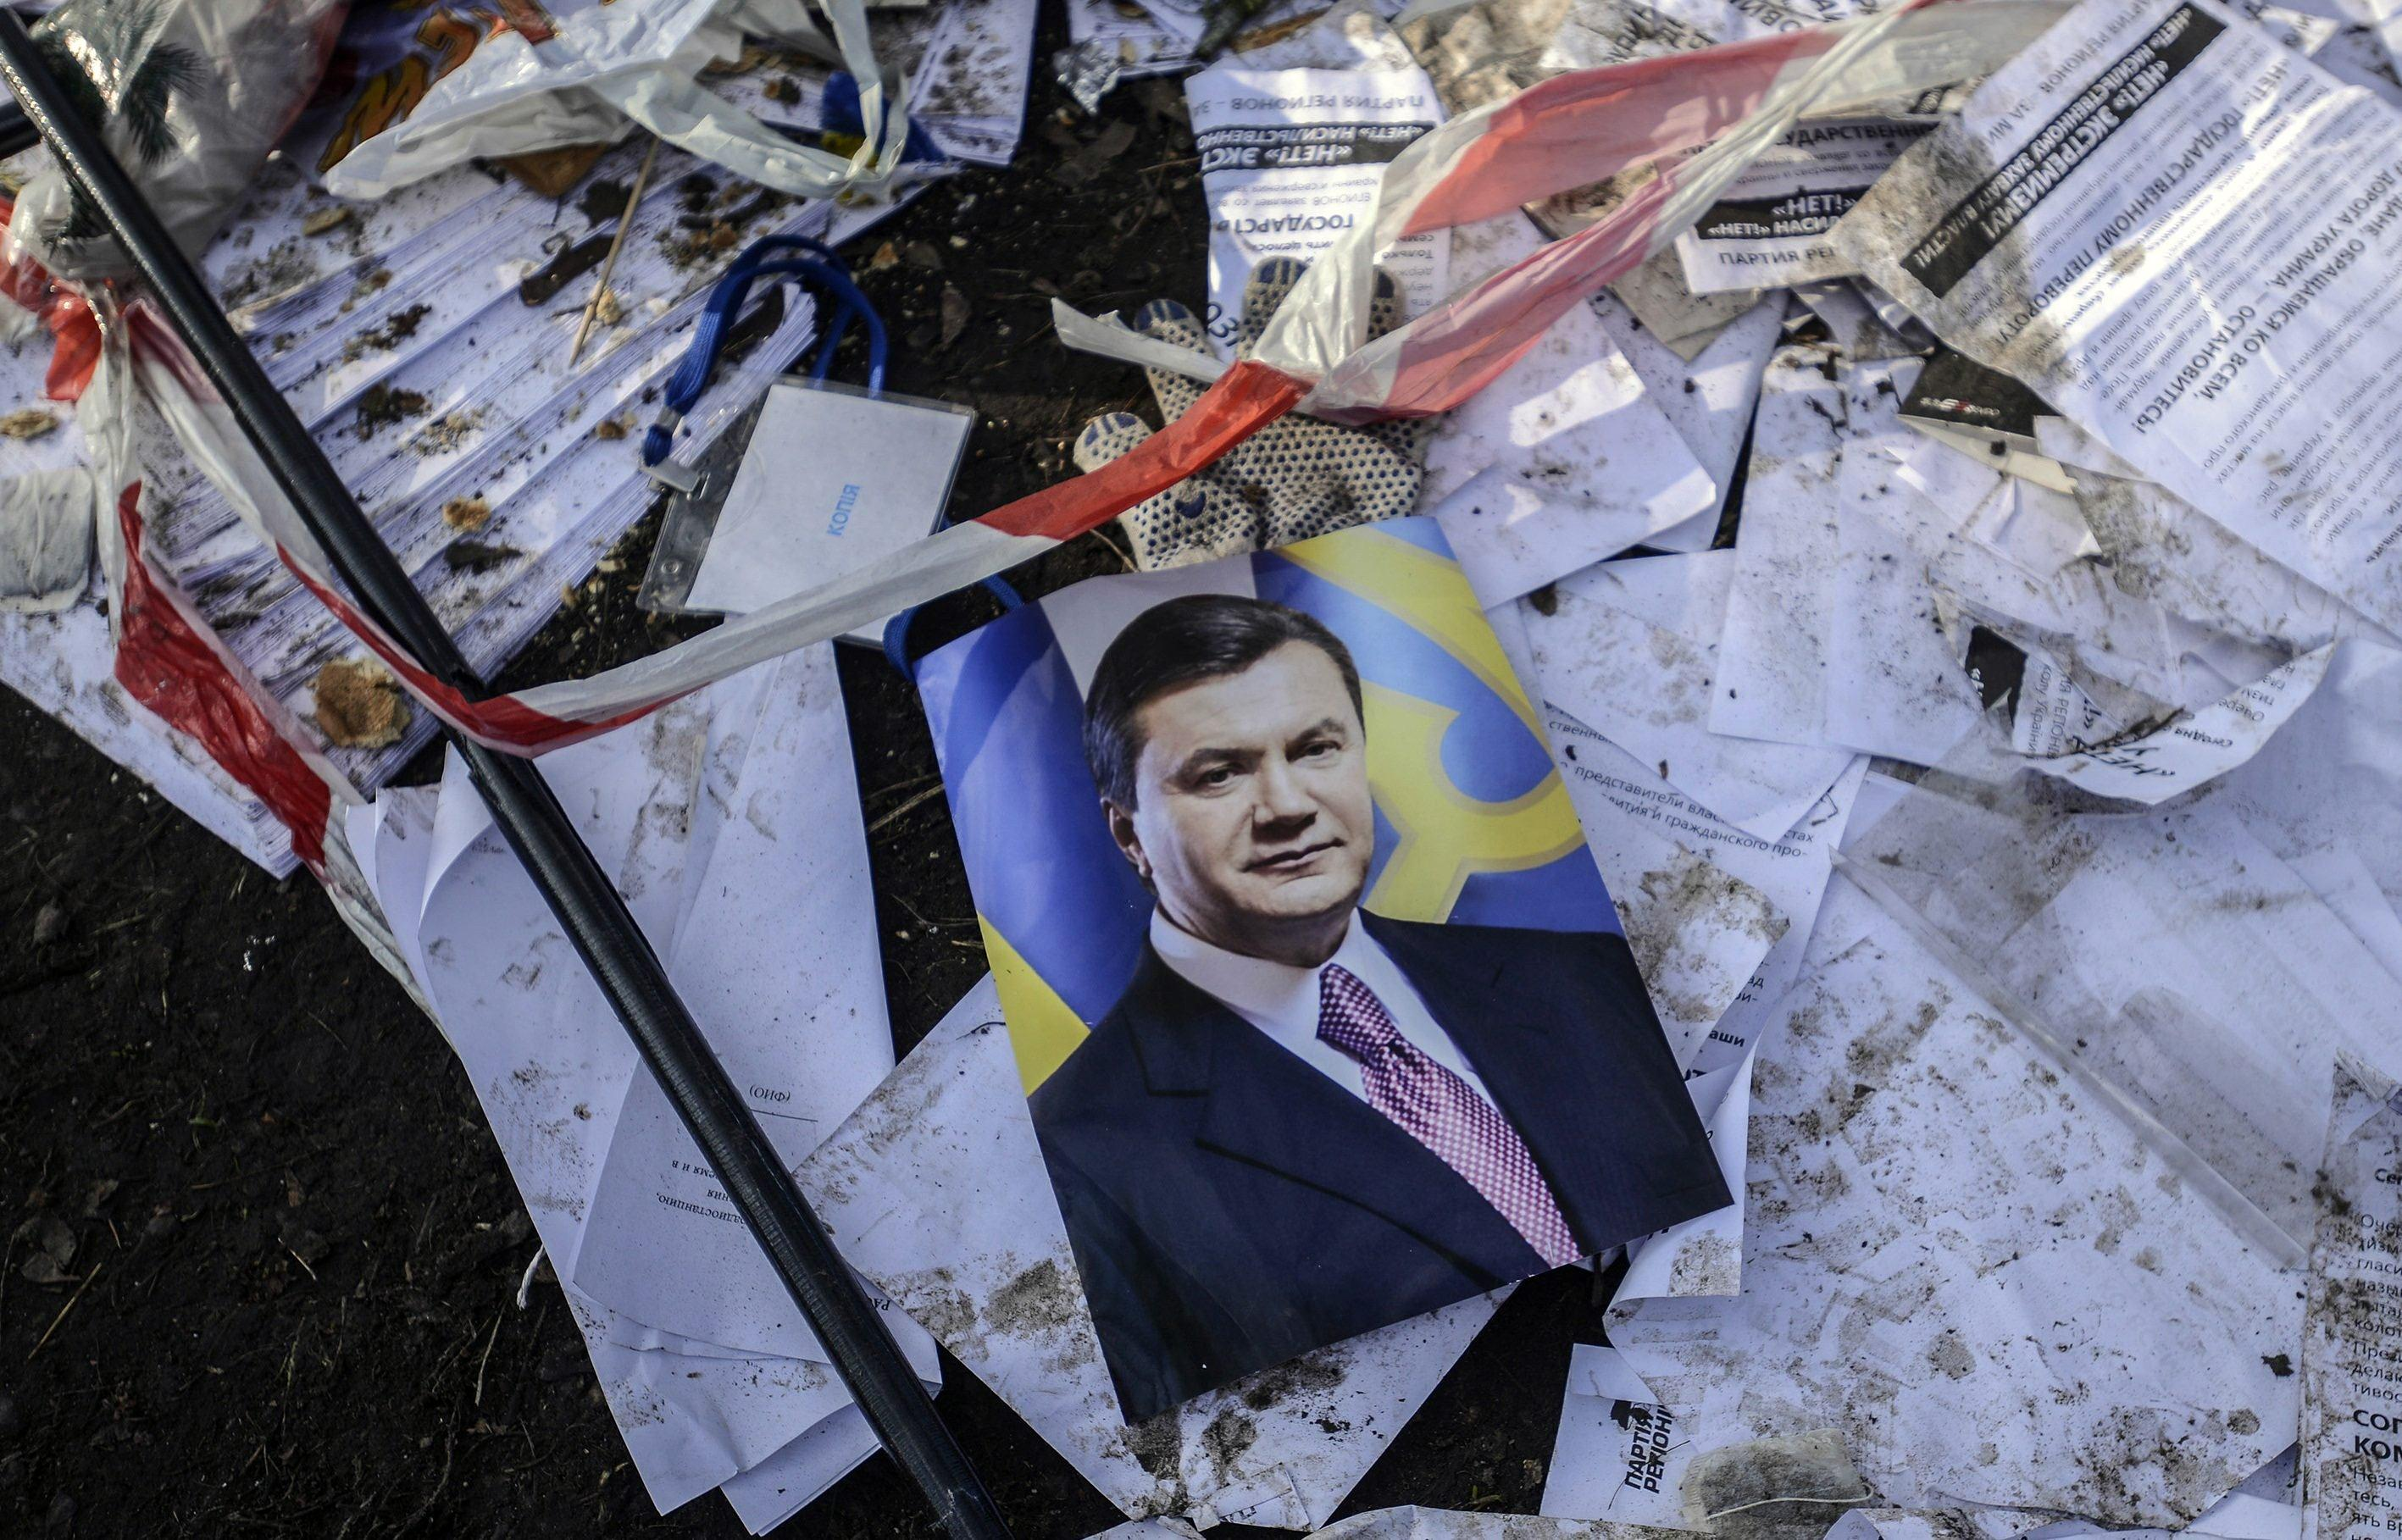 Image: A picture of Ukraine's President Viktor Yanukovich is seen on the ground in Kiev